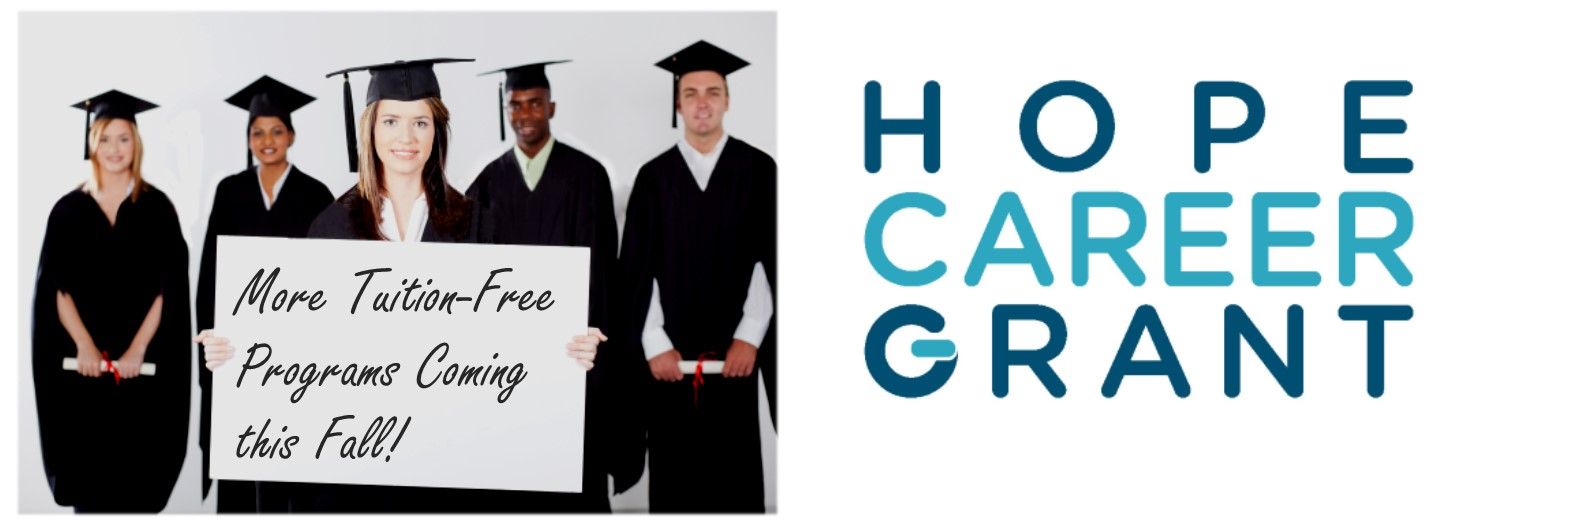 HOPE Career Grant Expansion Starting this Fall!